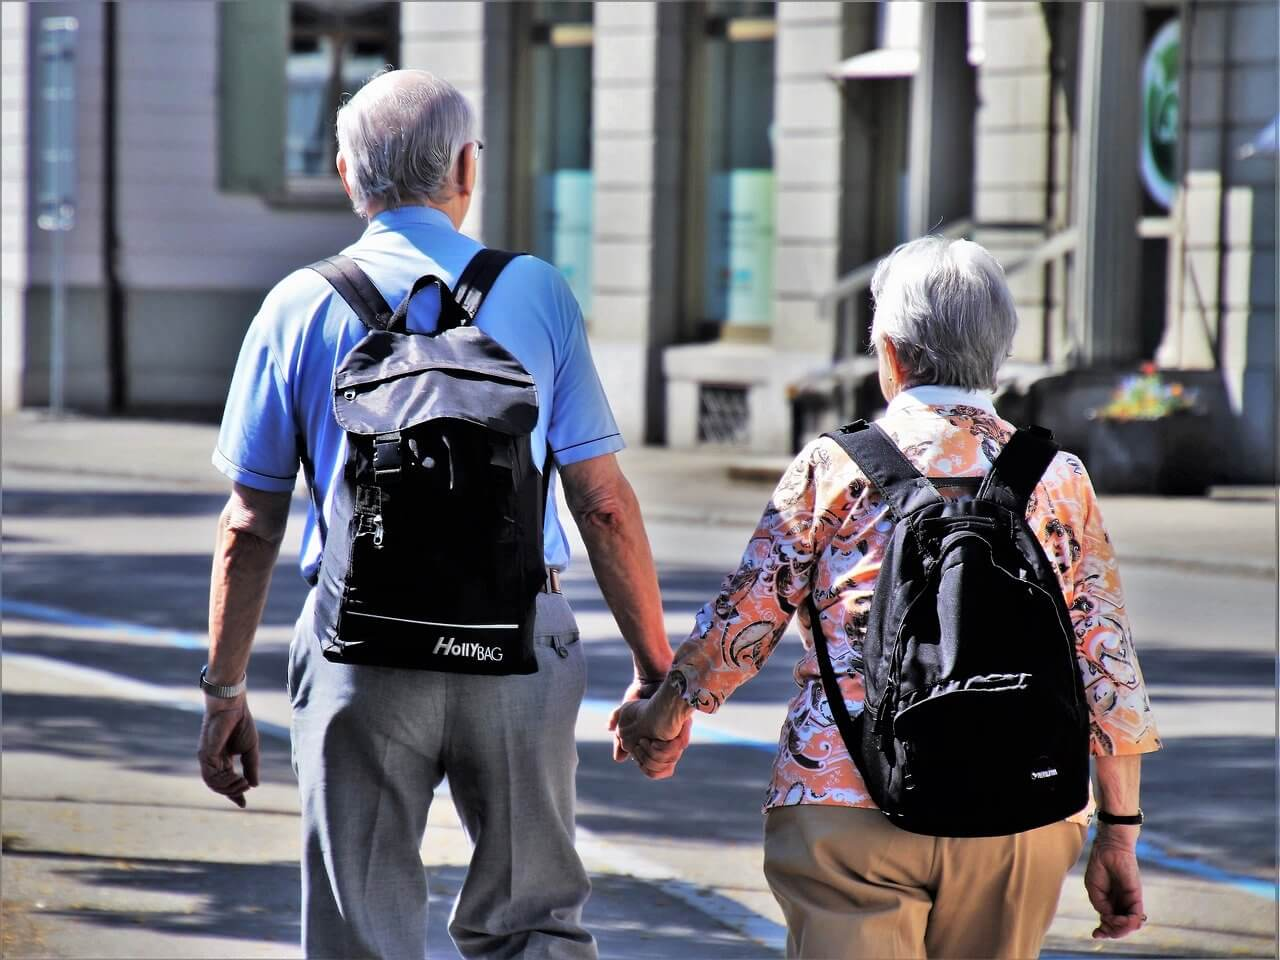 An elderly couple with backpacks holding hands and walking along an urban street in the daytime